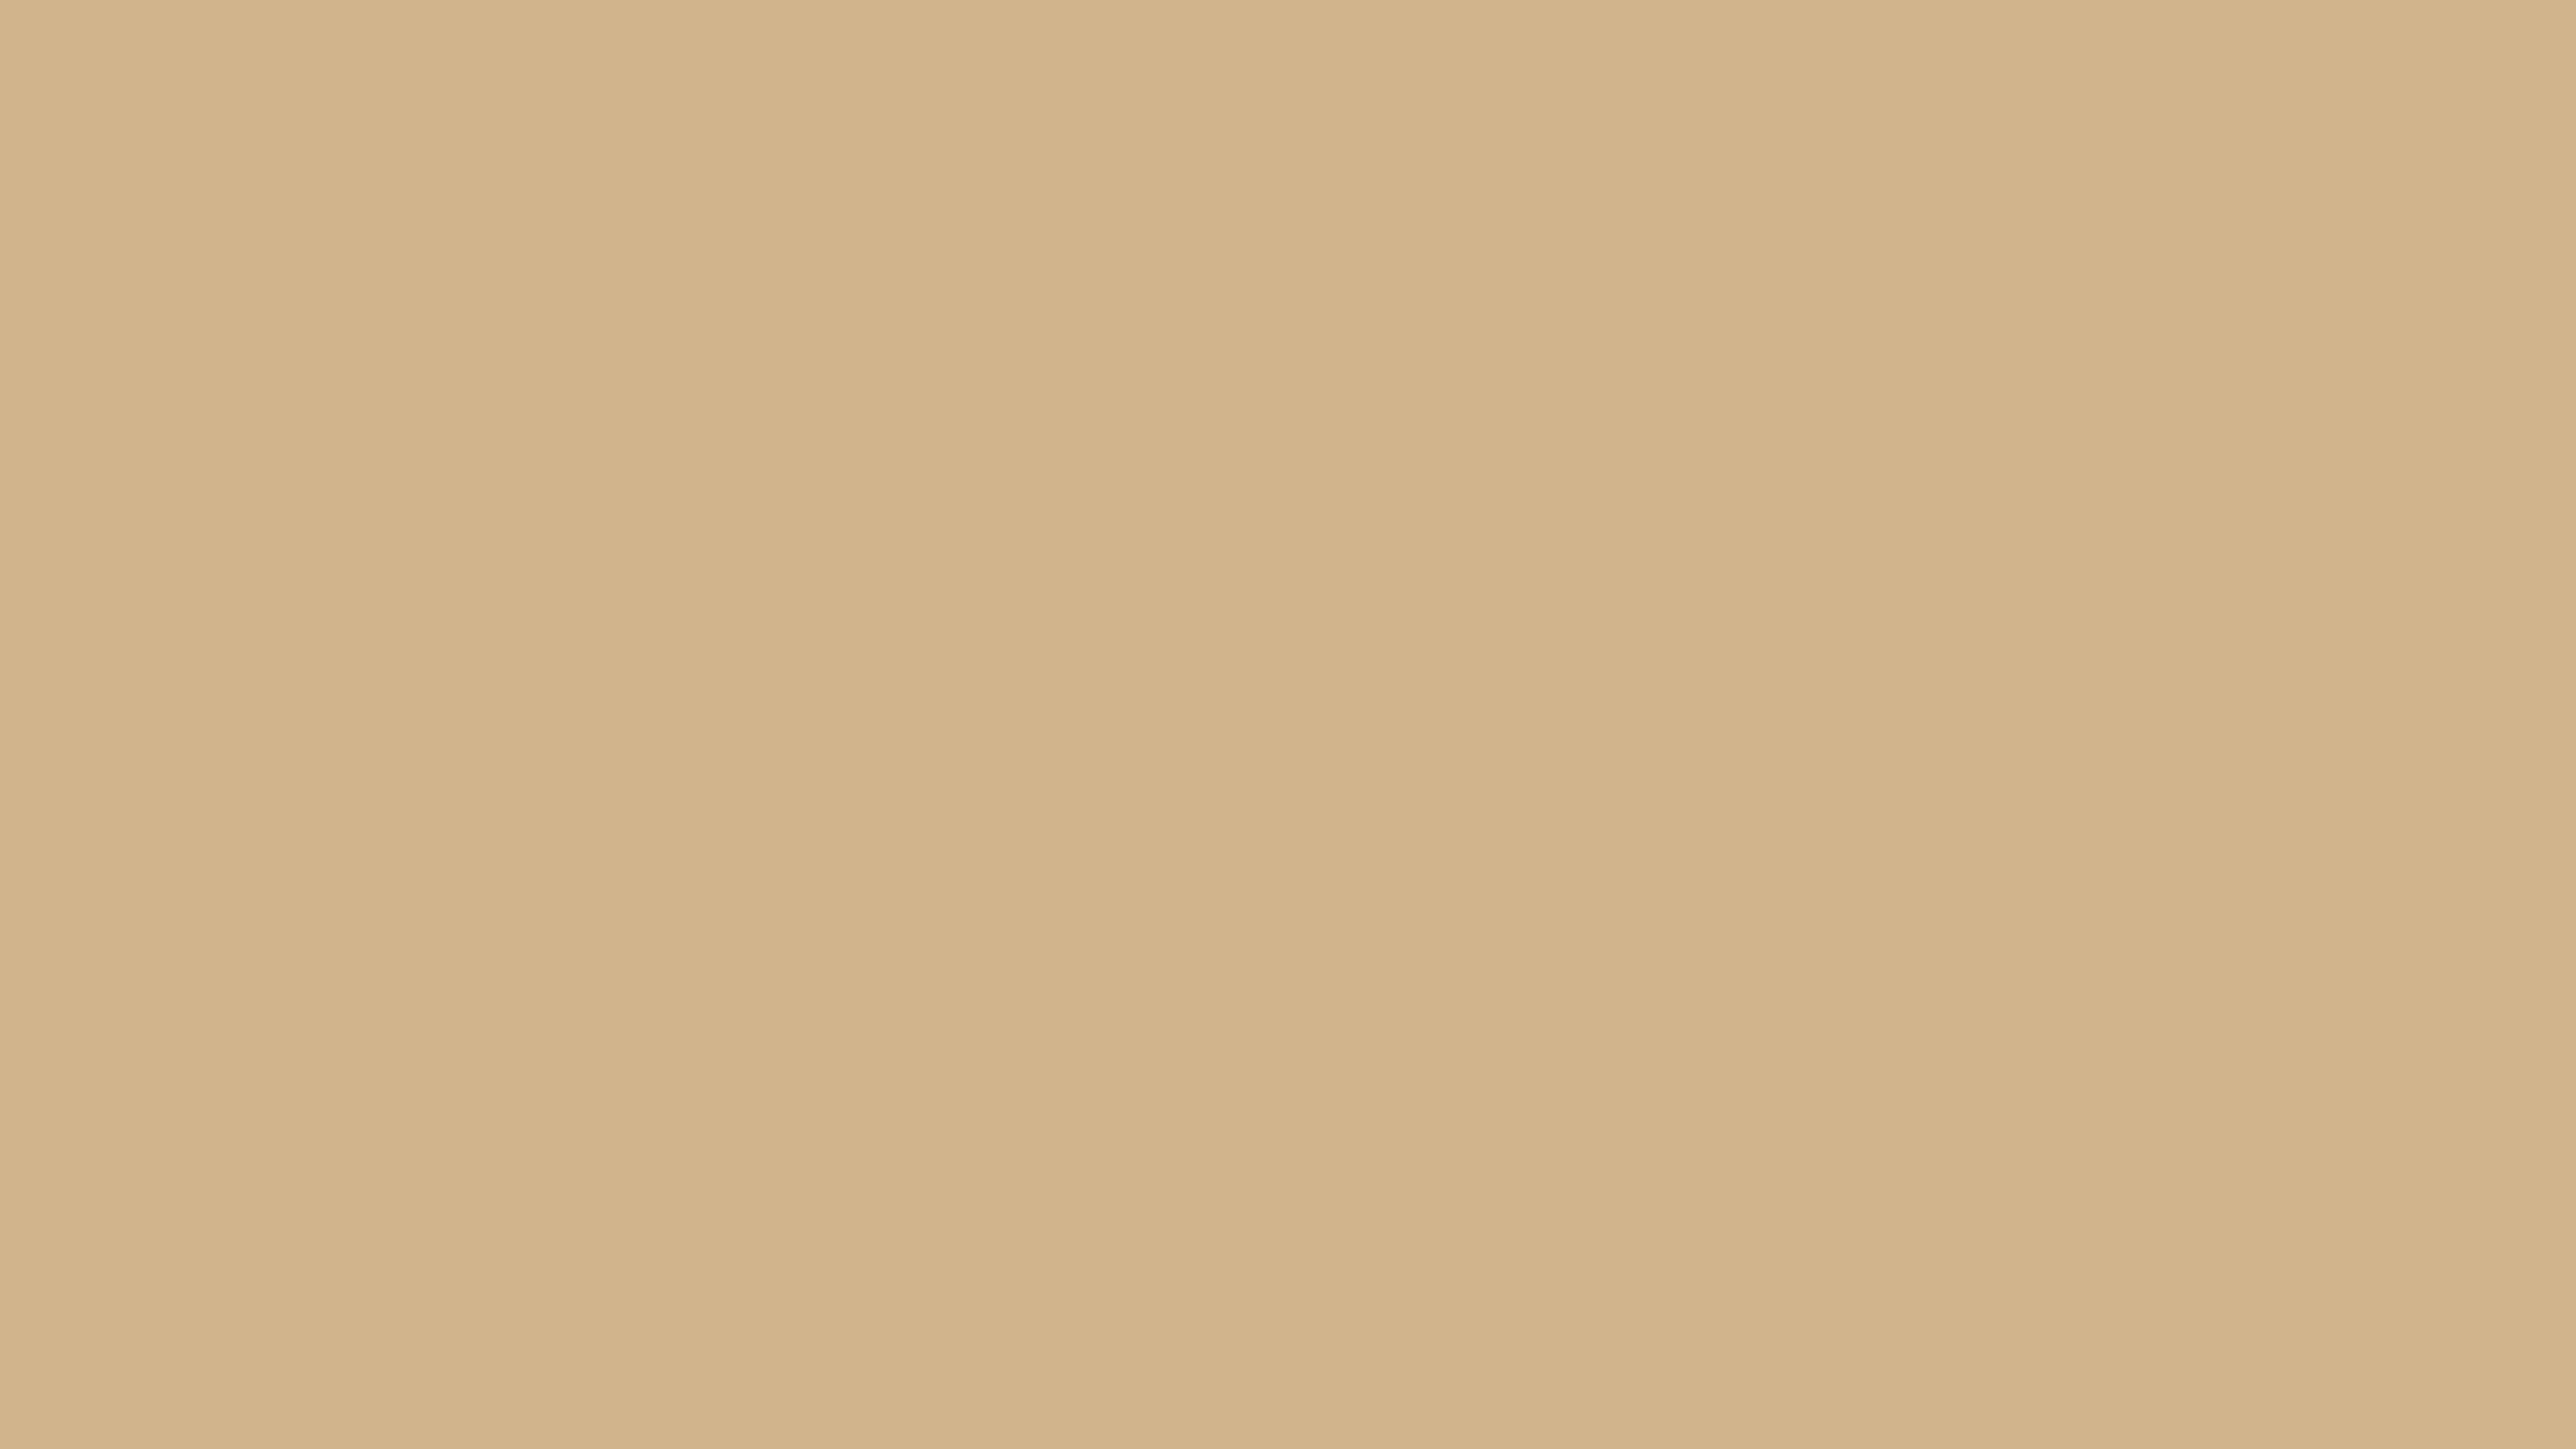 7680x4320 Tan Solid Color Background